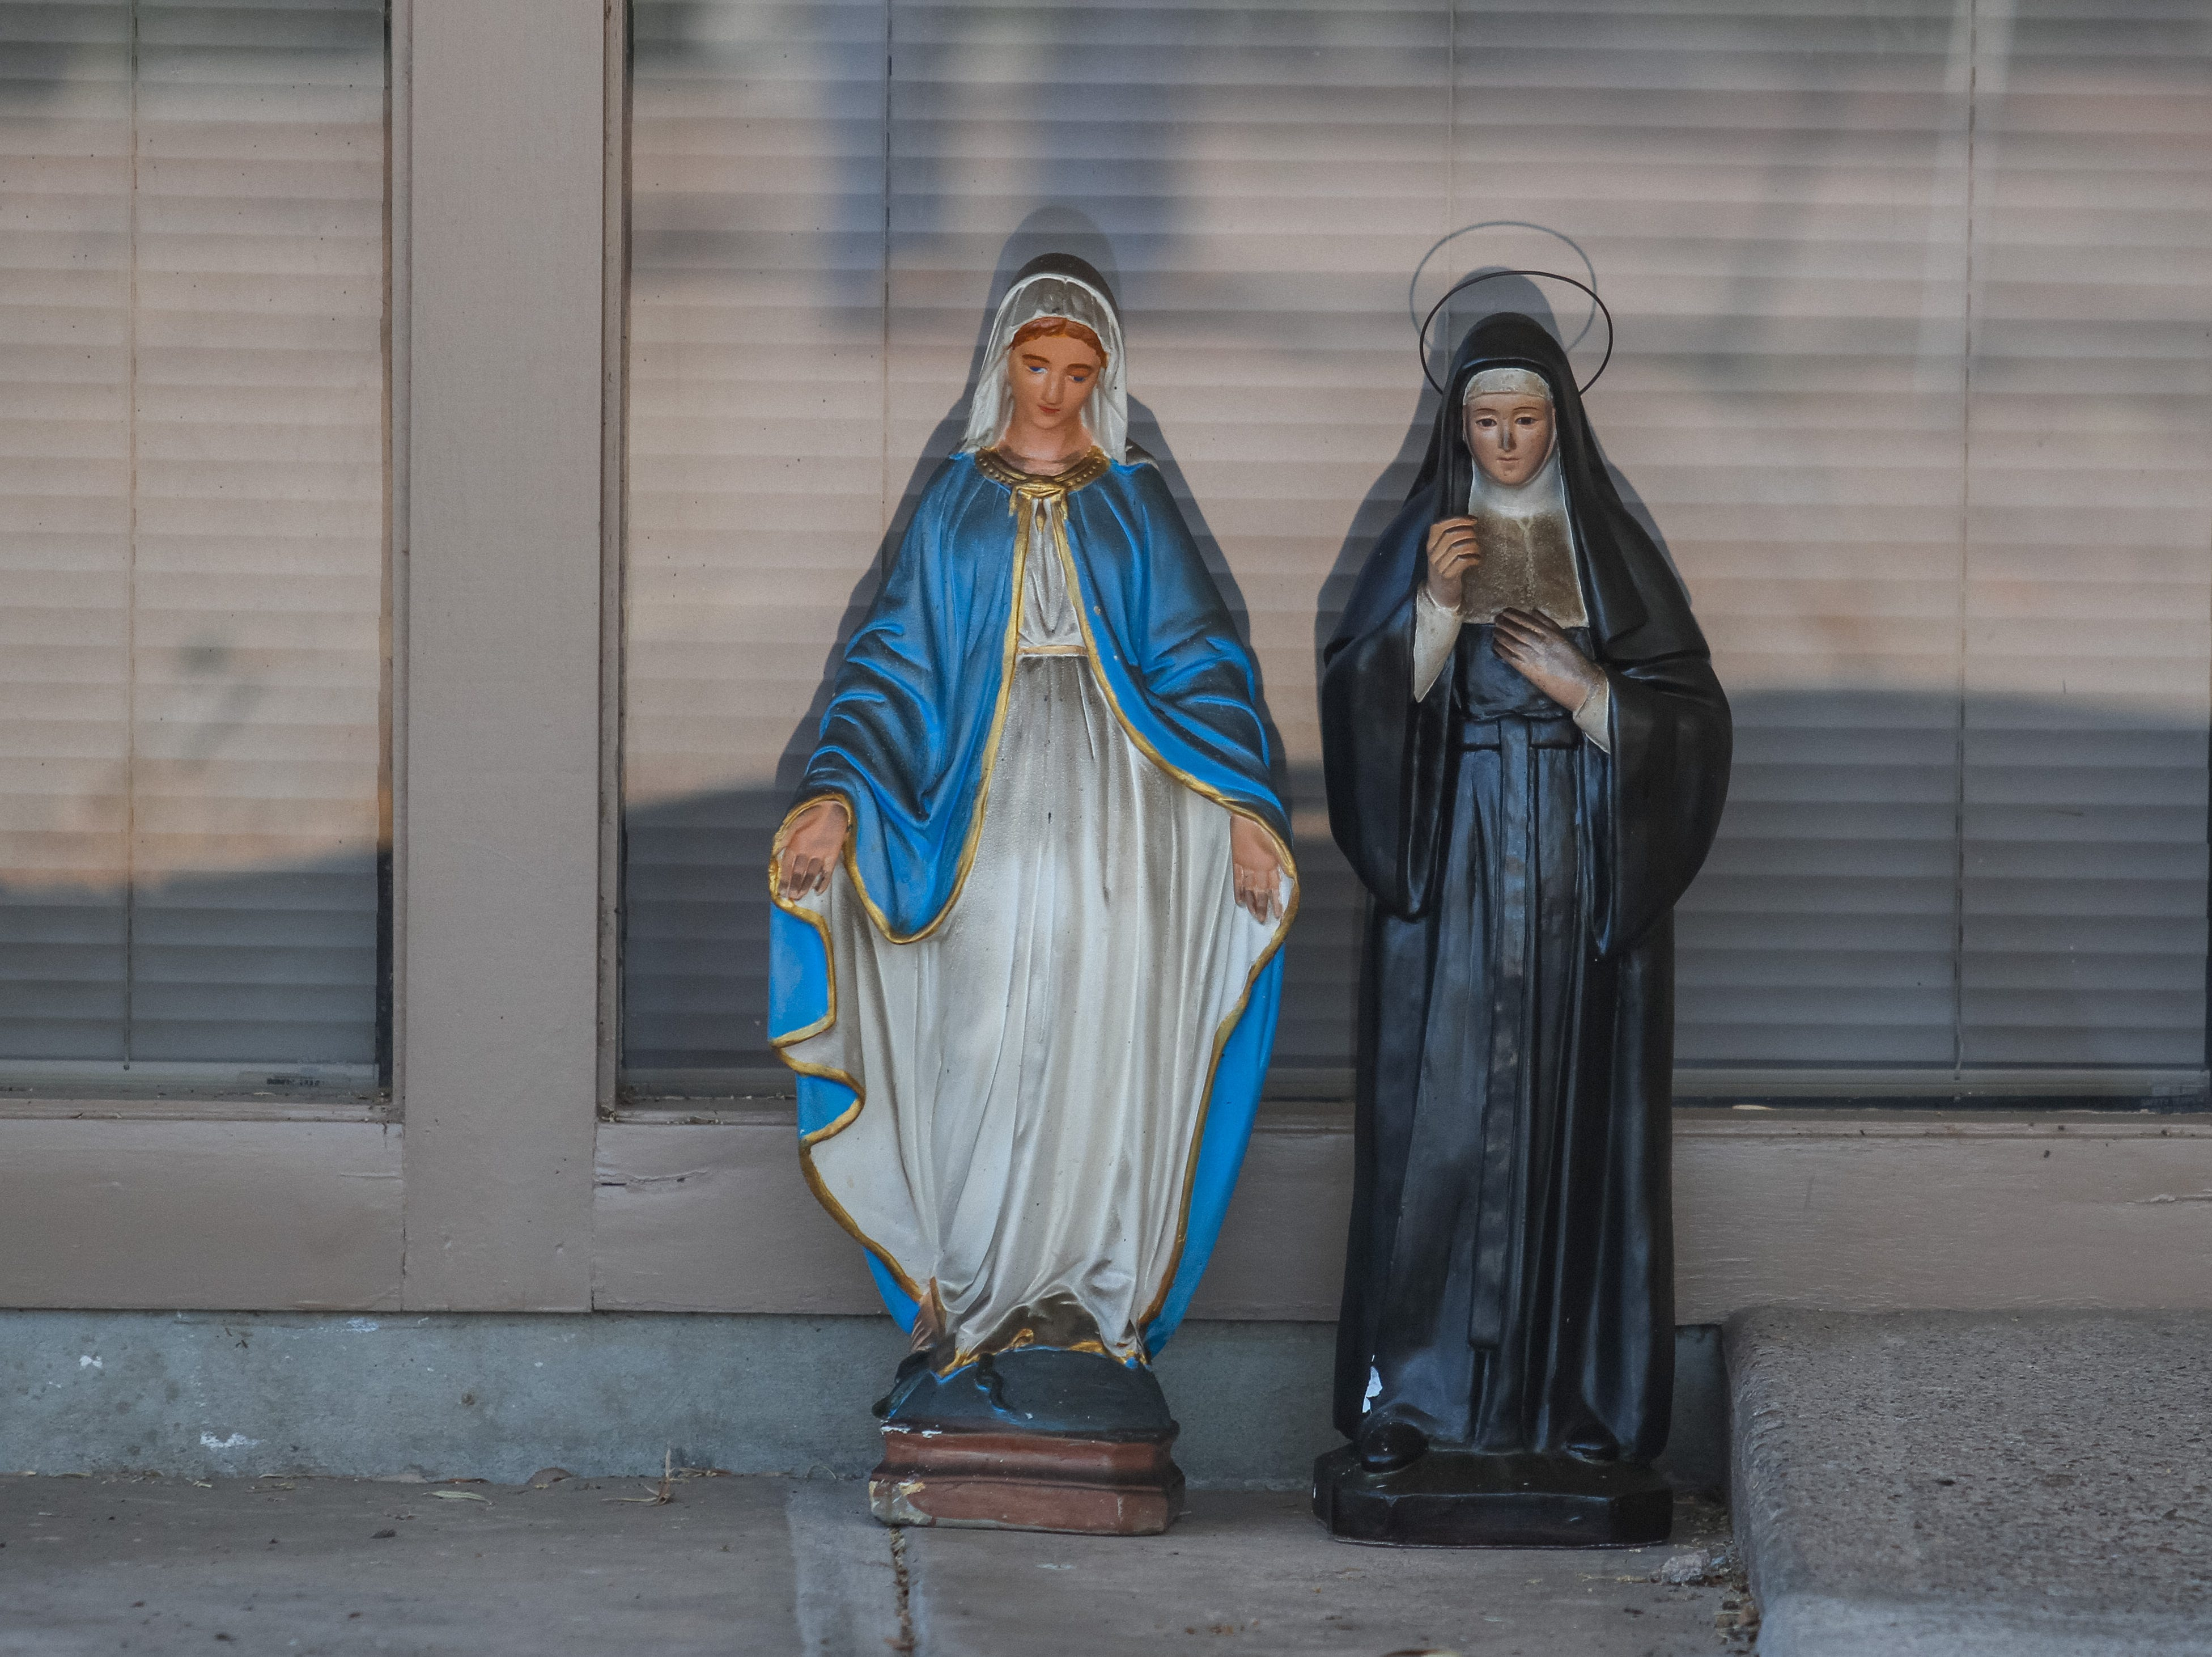 Statues are saved as Phoenix Fire Department works to extinguish St. Joseph Catholic Church in Phoenix after the building caught fire on May 1, 2019.